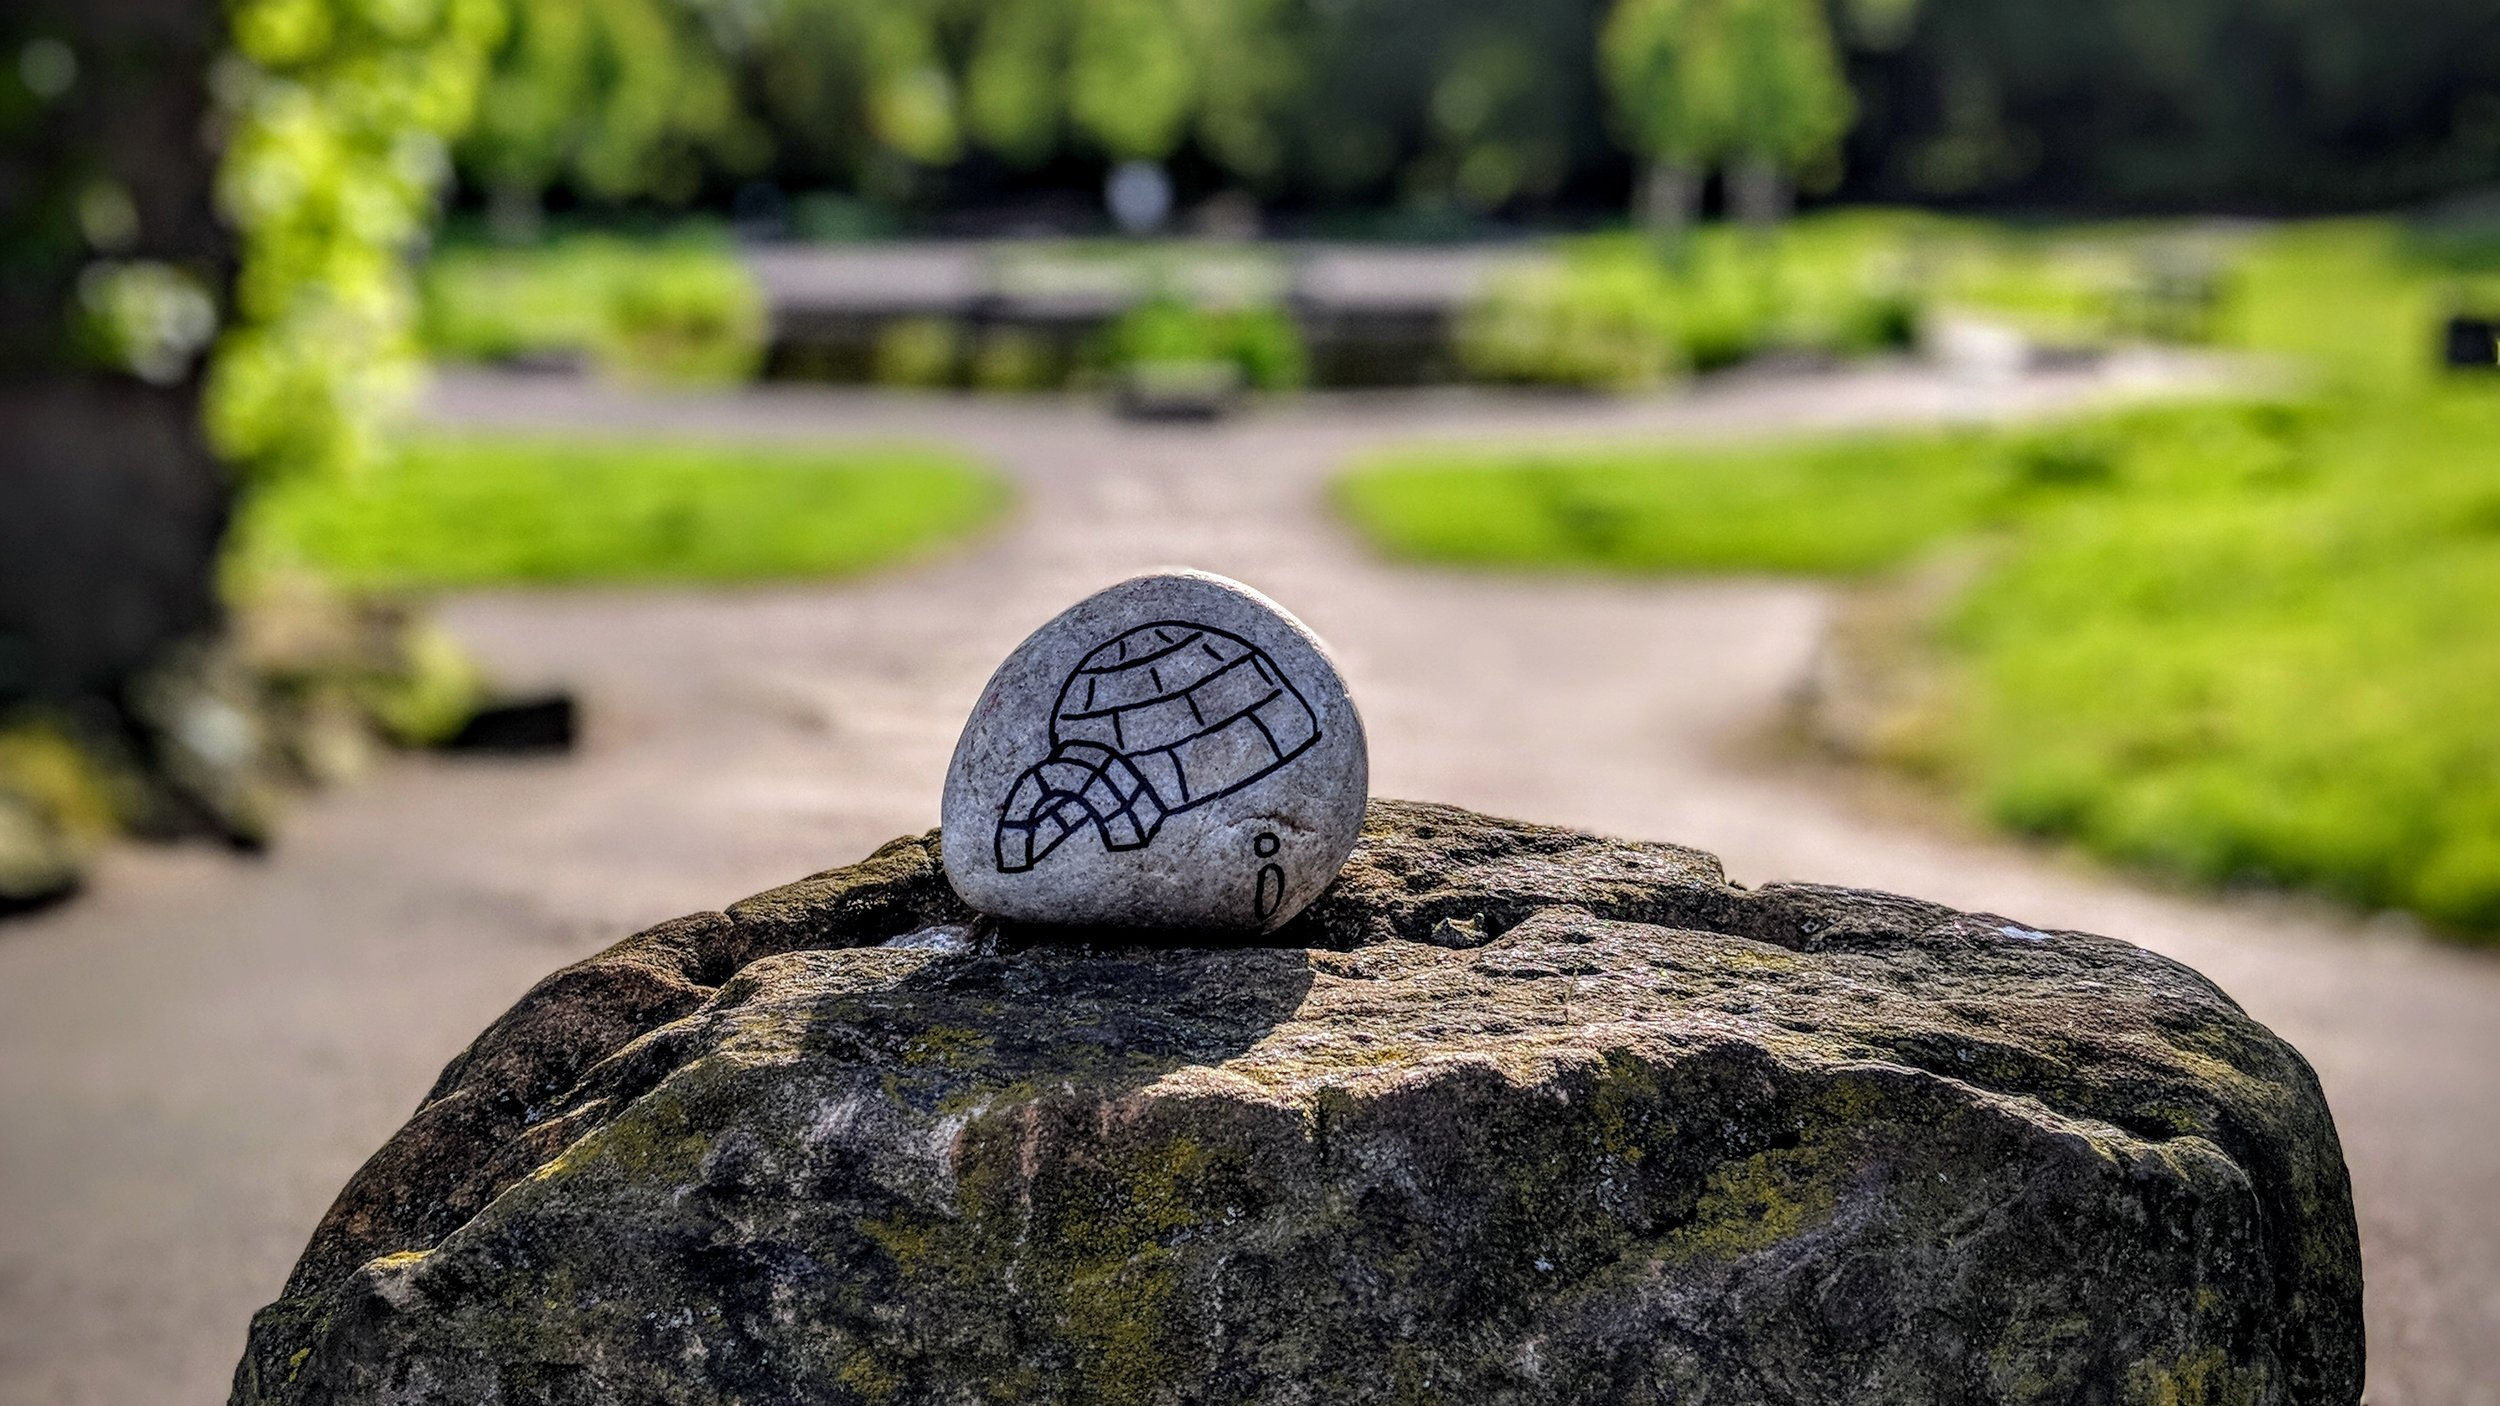 Igloo drawn on a rock